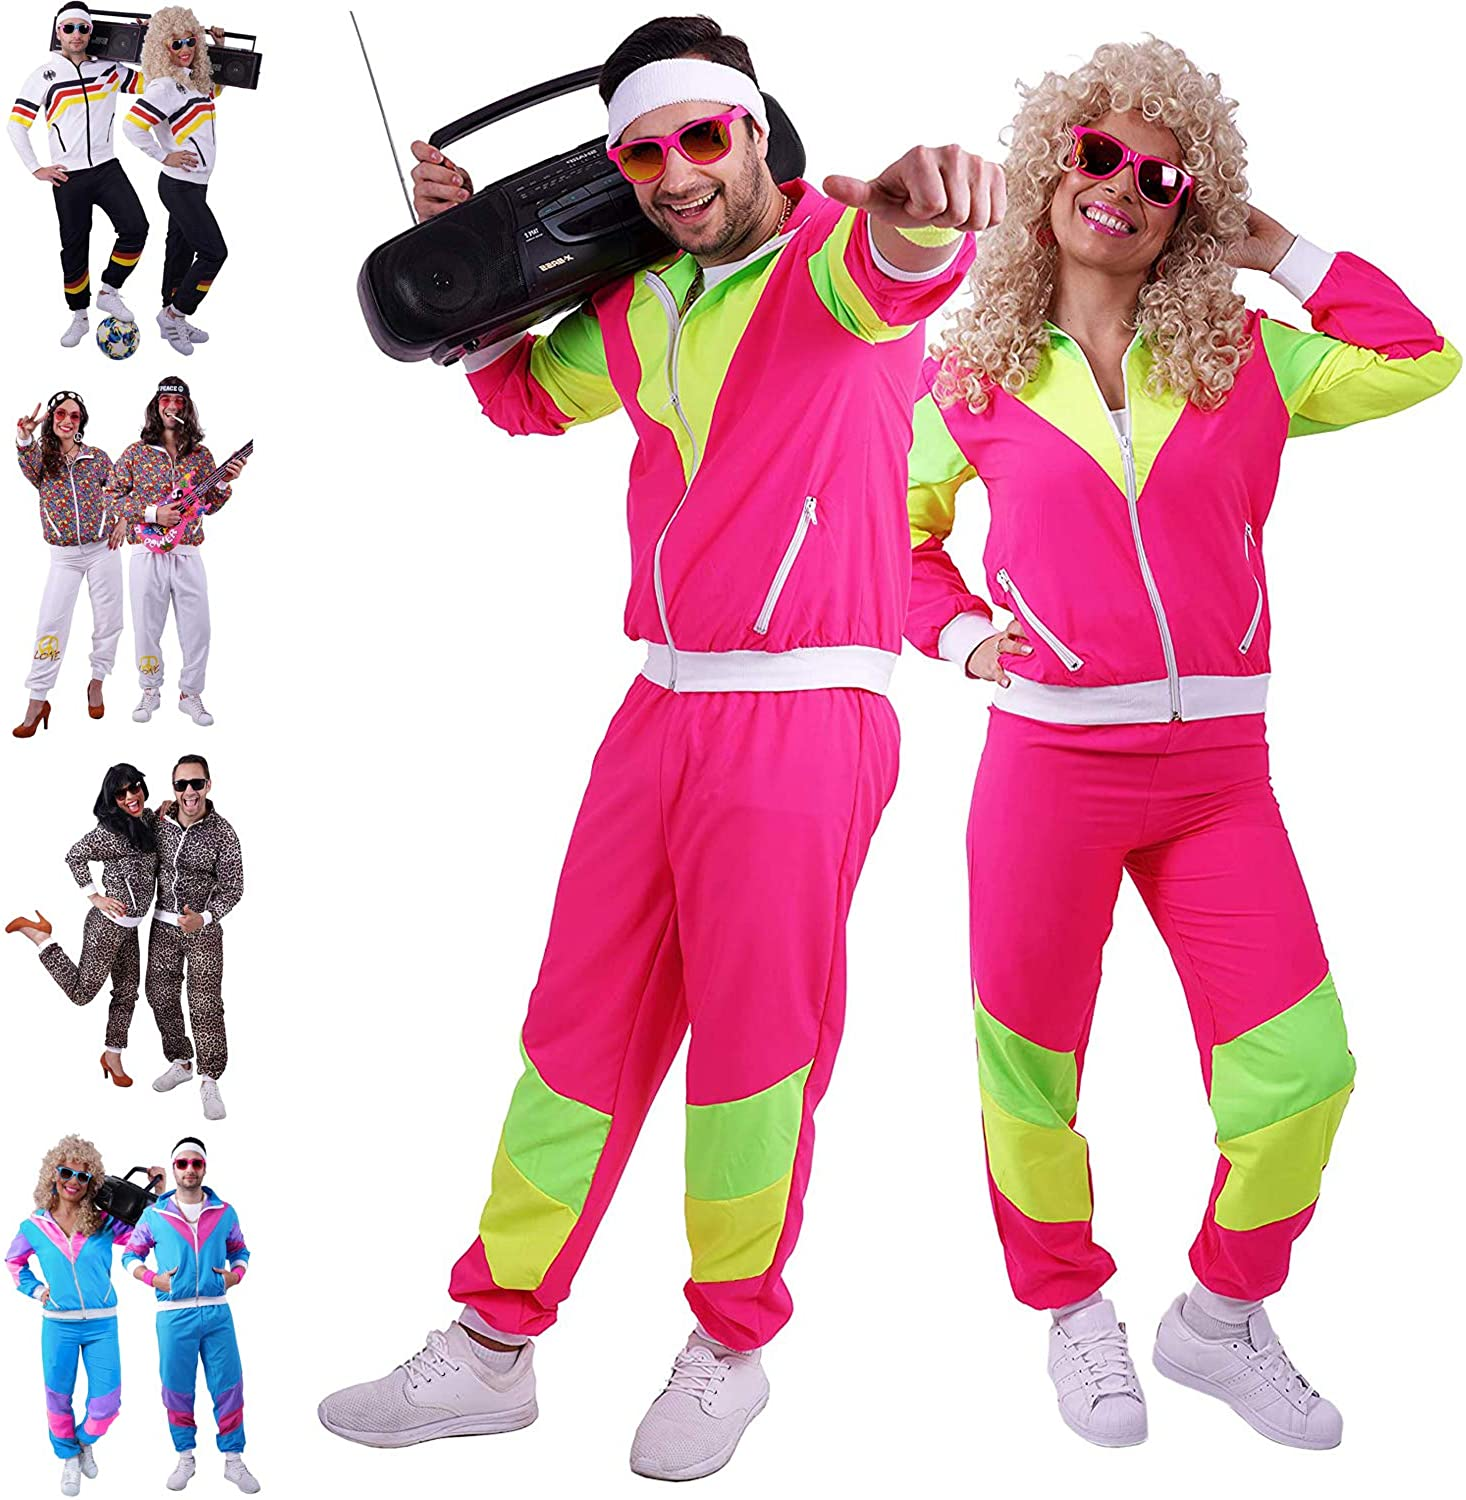 80s Outfit Inspiration, Party Ideas 80s / 90s Shell Suit Party Dress Costume/Retro Tracksuit / 90s Hip Hop Costumes / 80s Costumes for Men/Windbreaker and Pants  AT vintagedancer.com